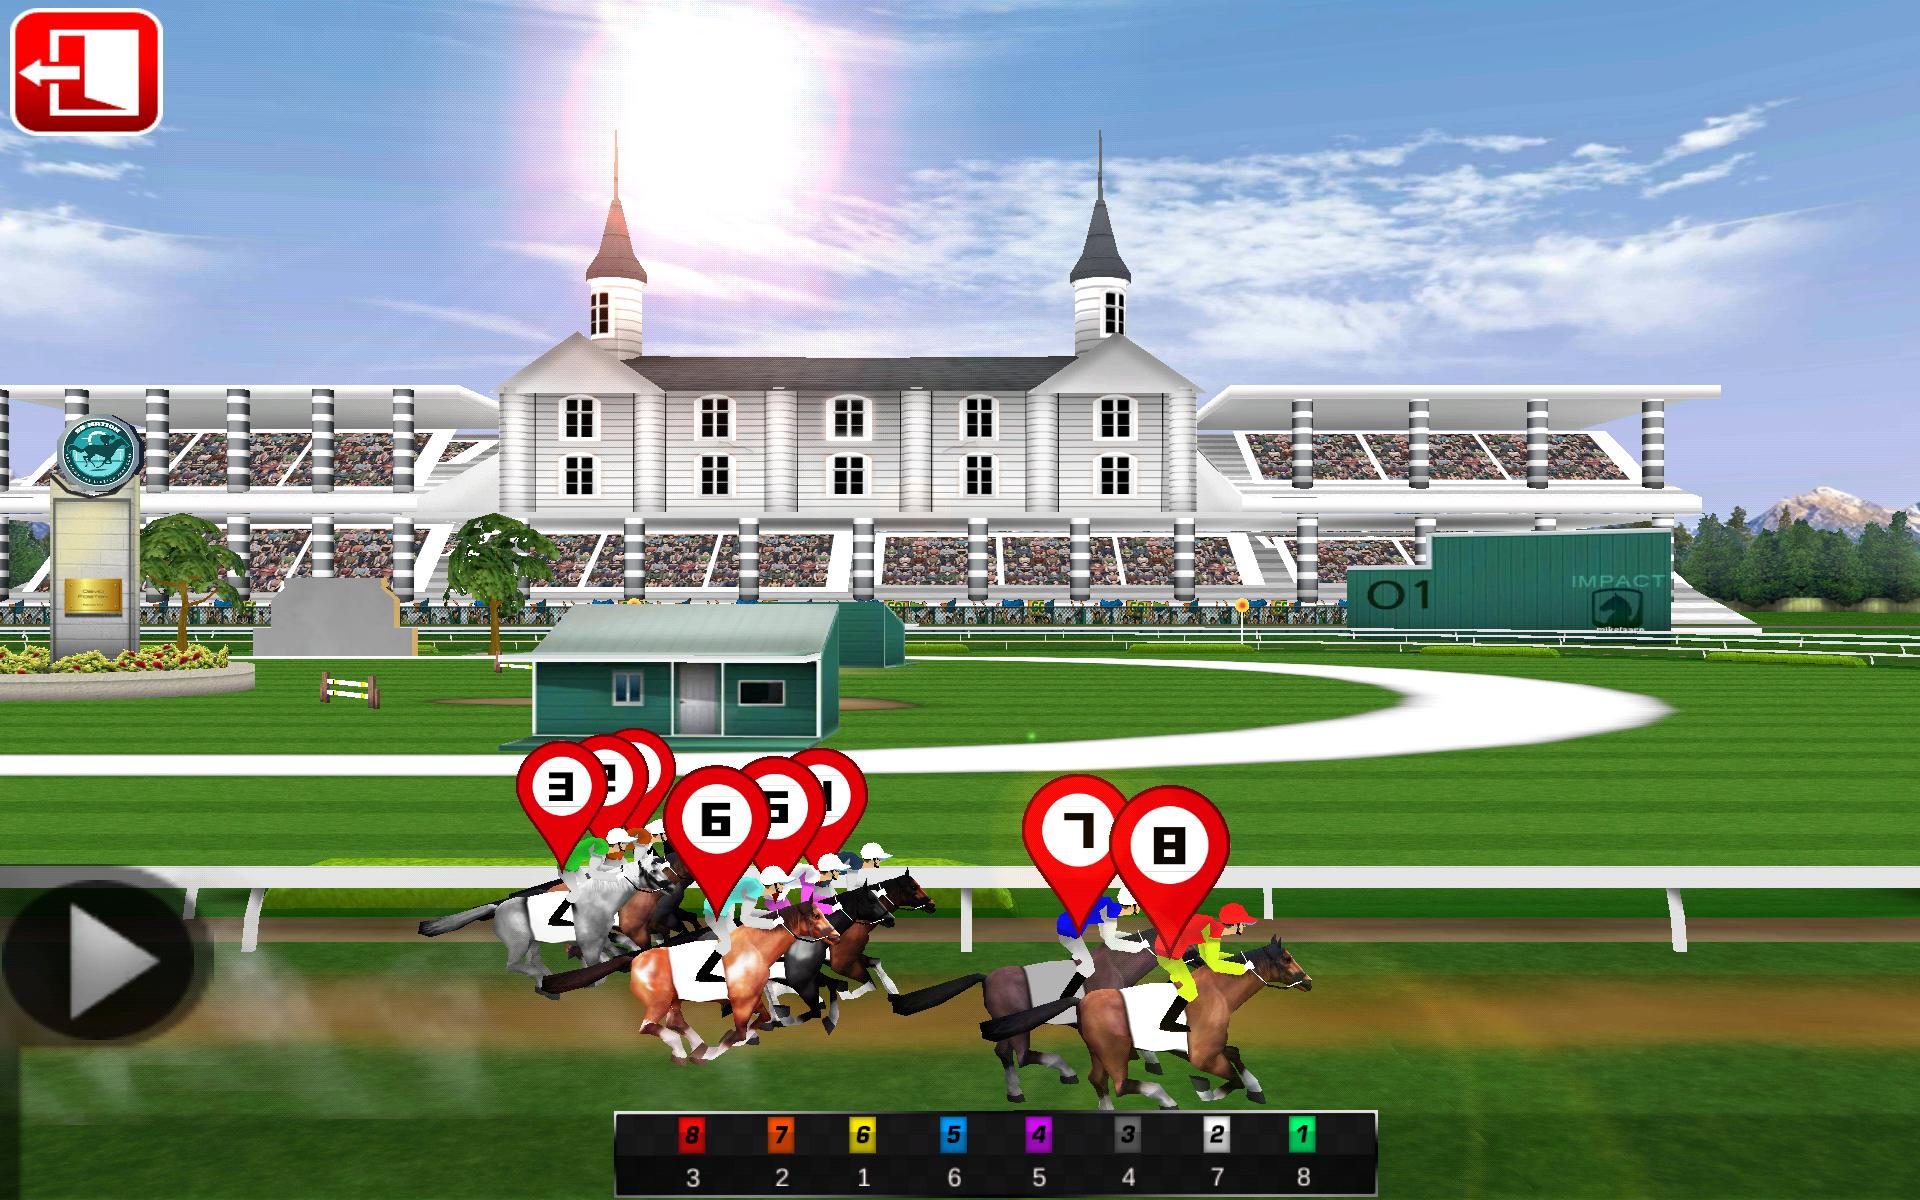 Horse racing betting games free download high school musical bet on it music video